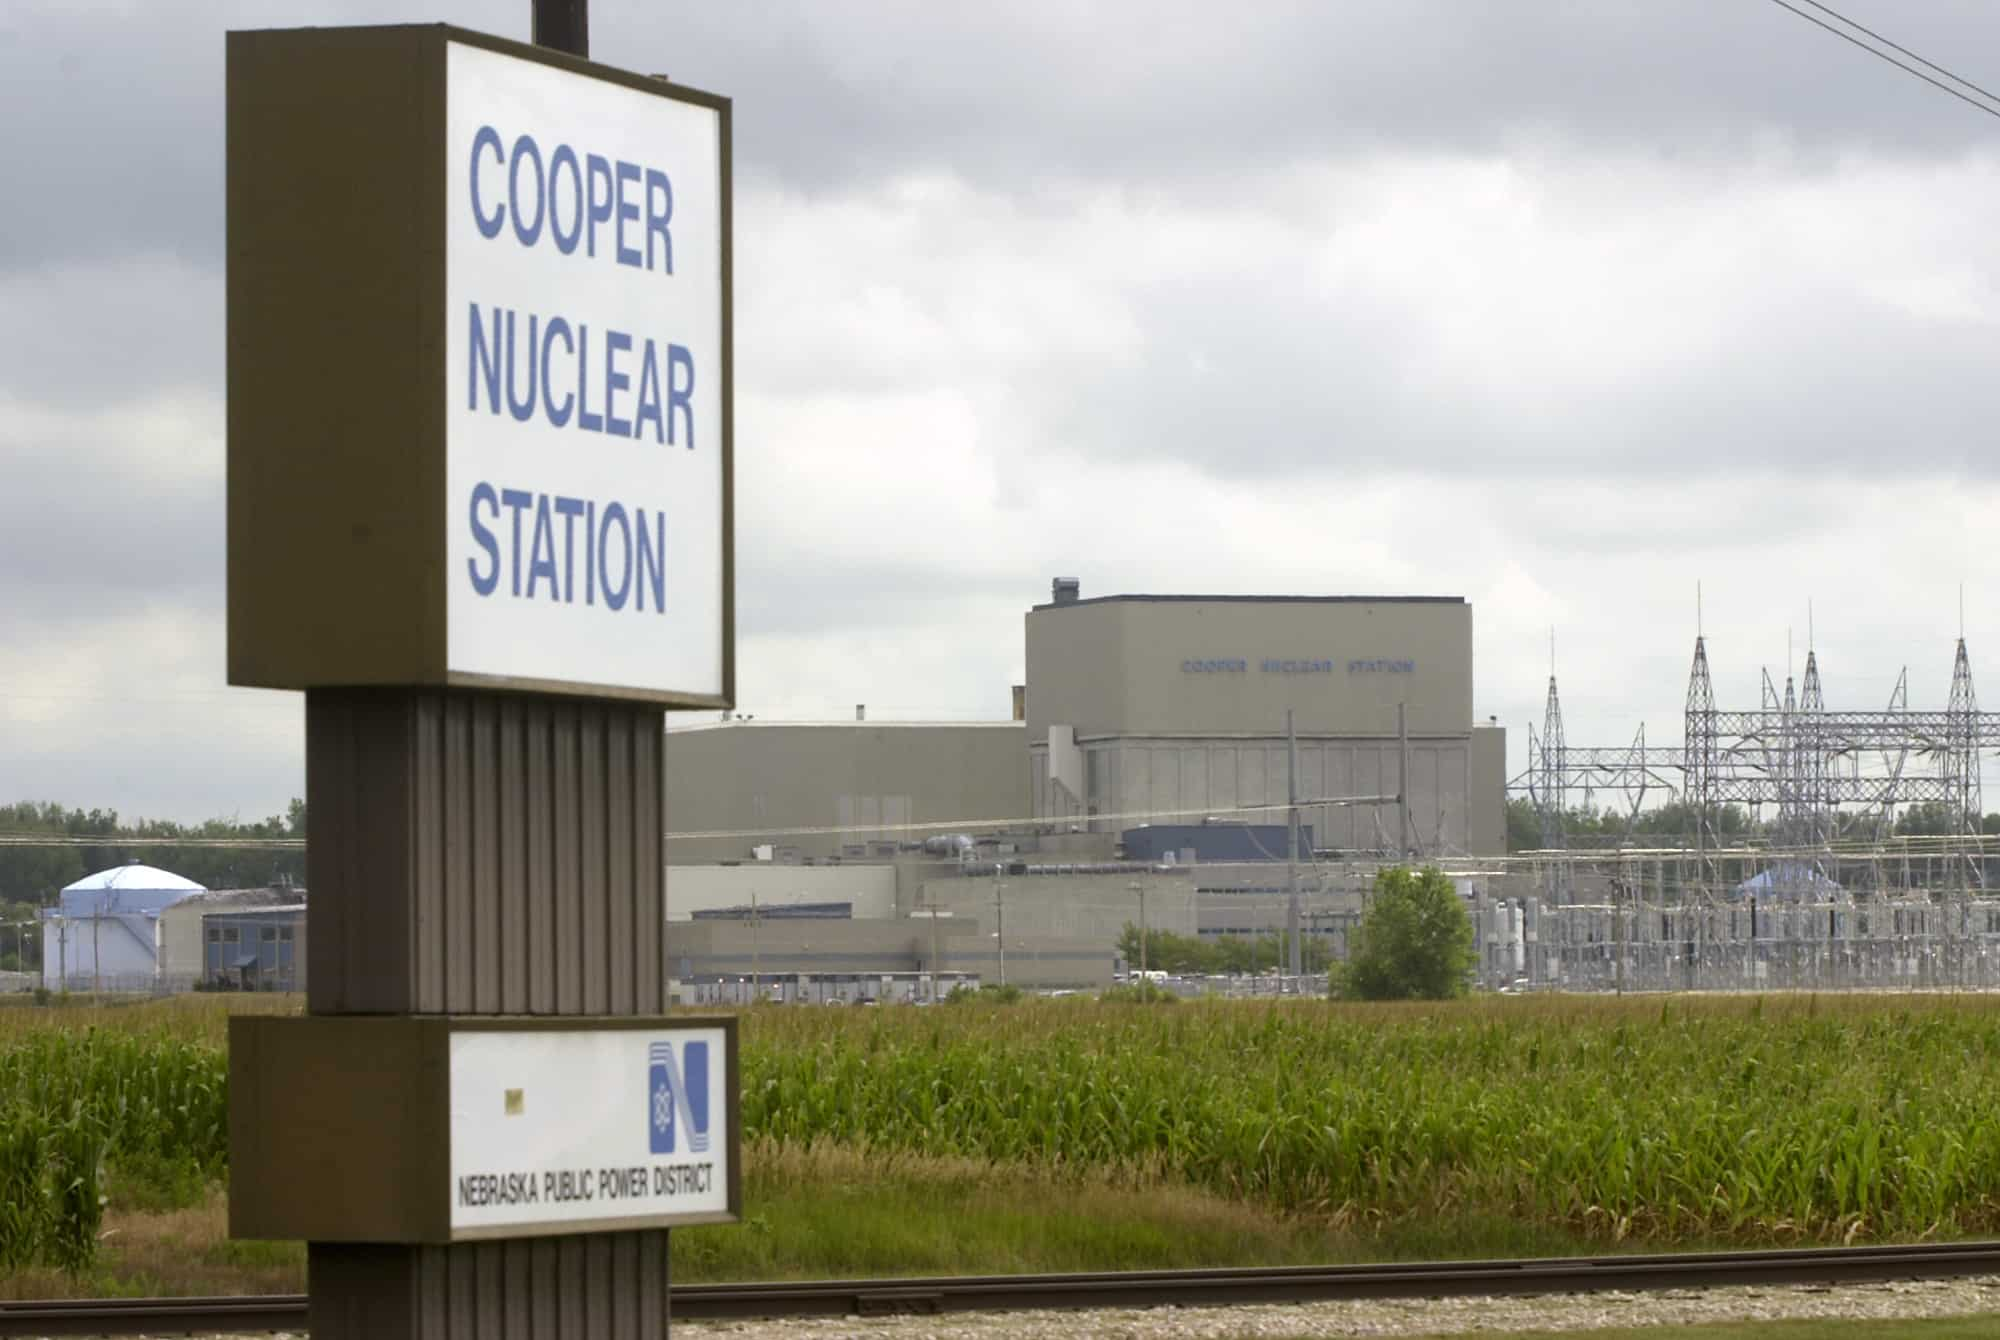 Cooper Nuclear Power Station